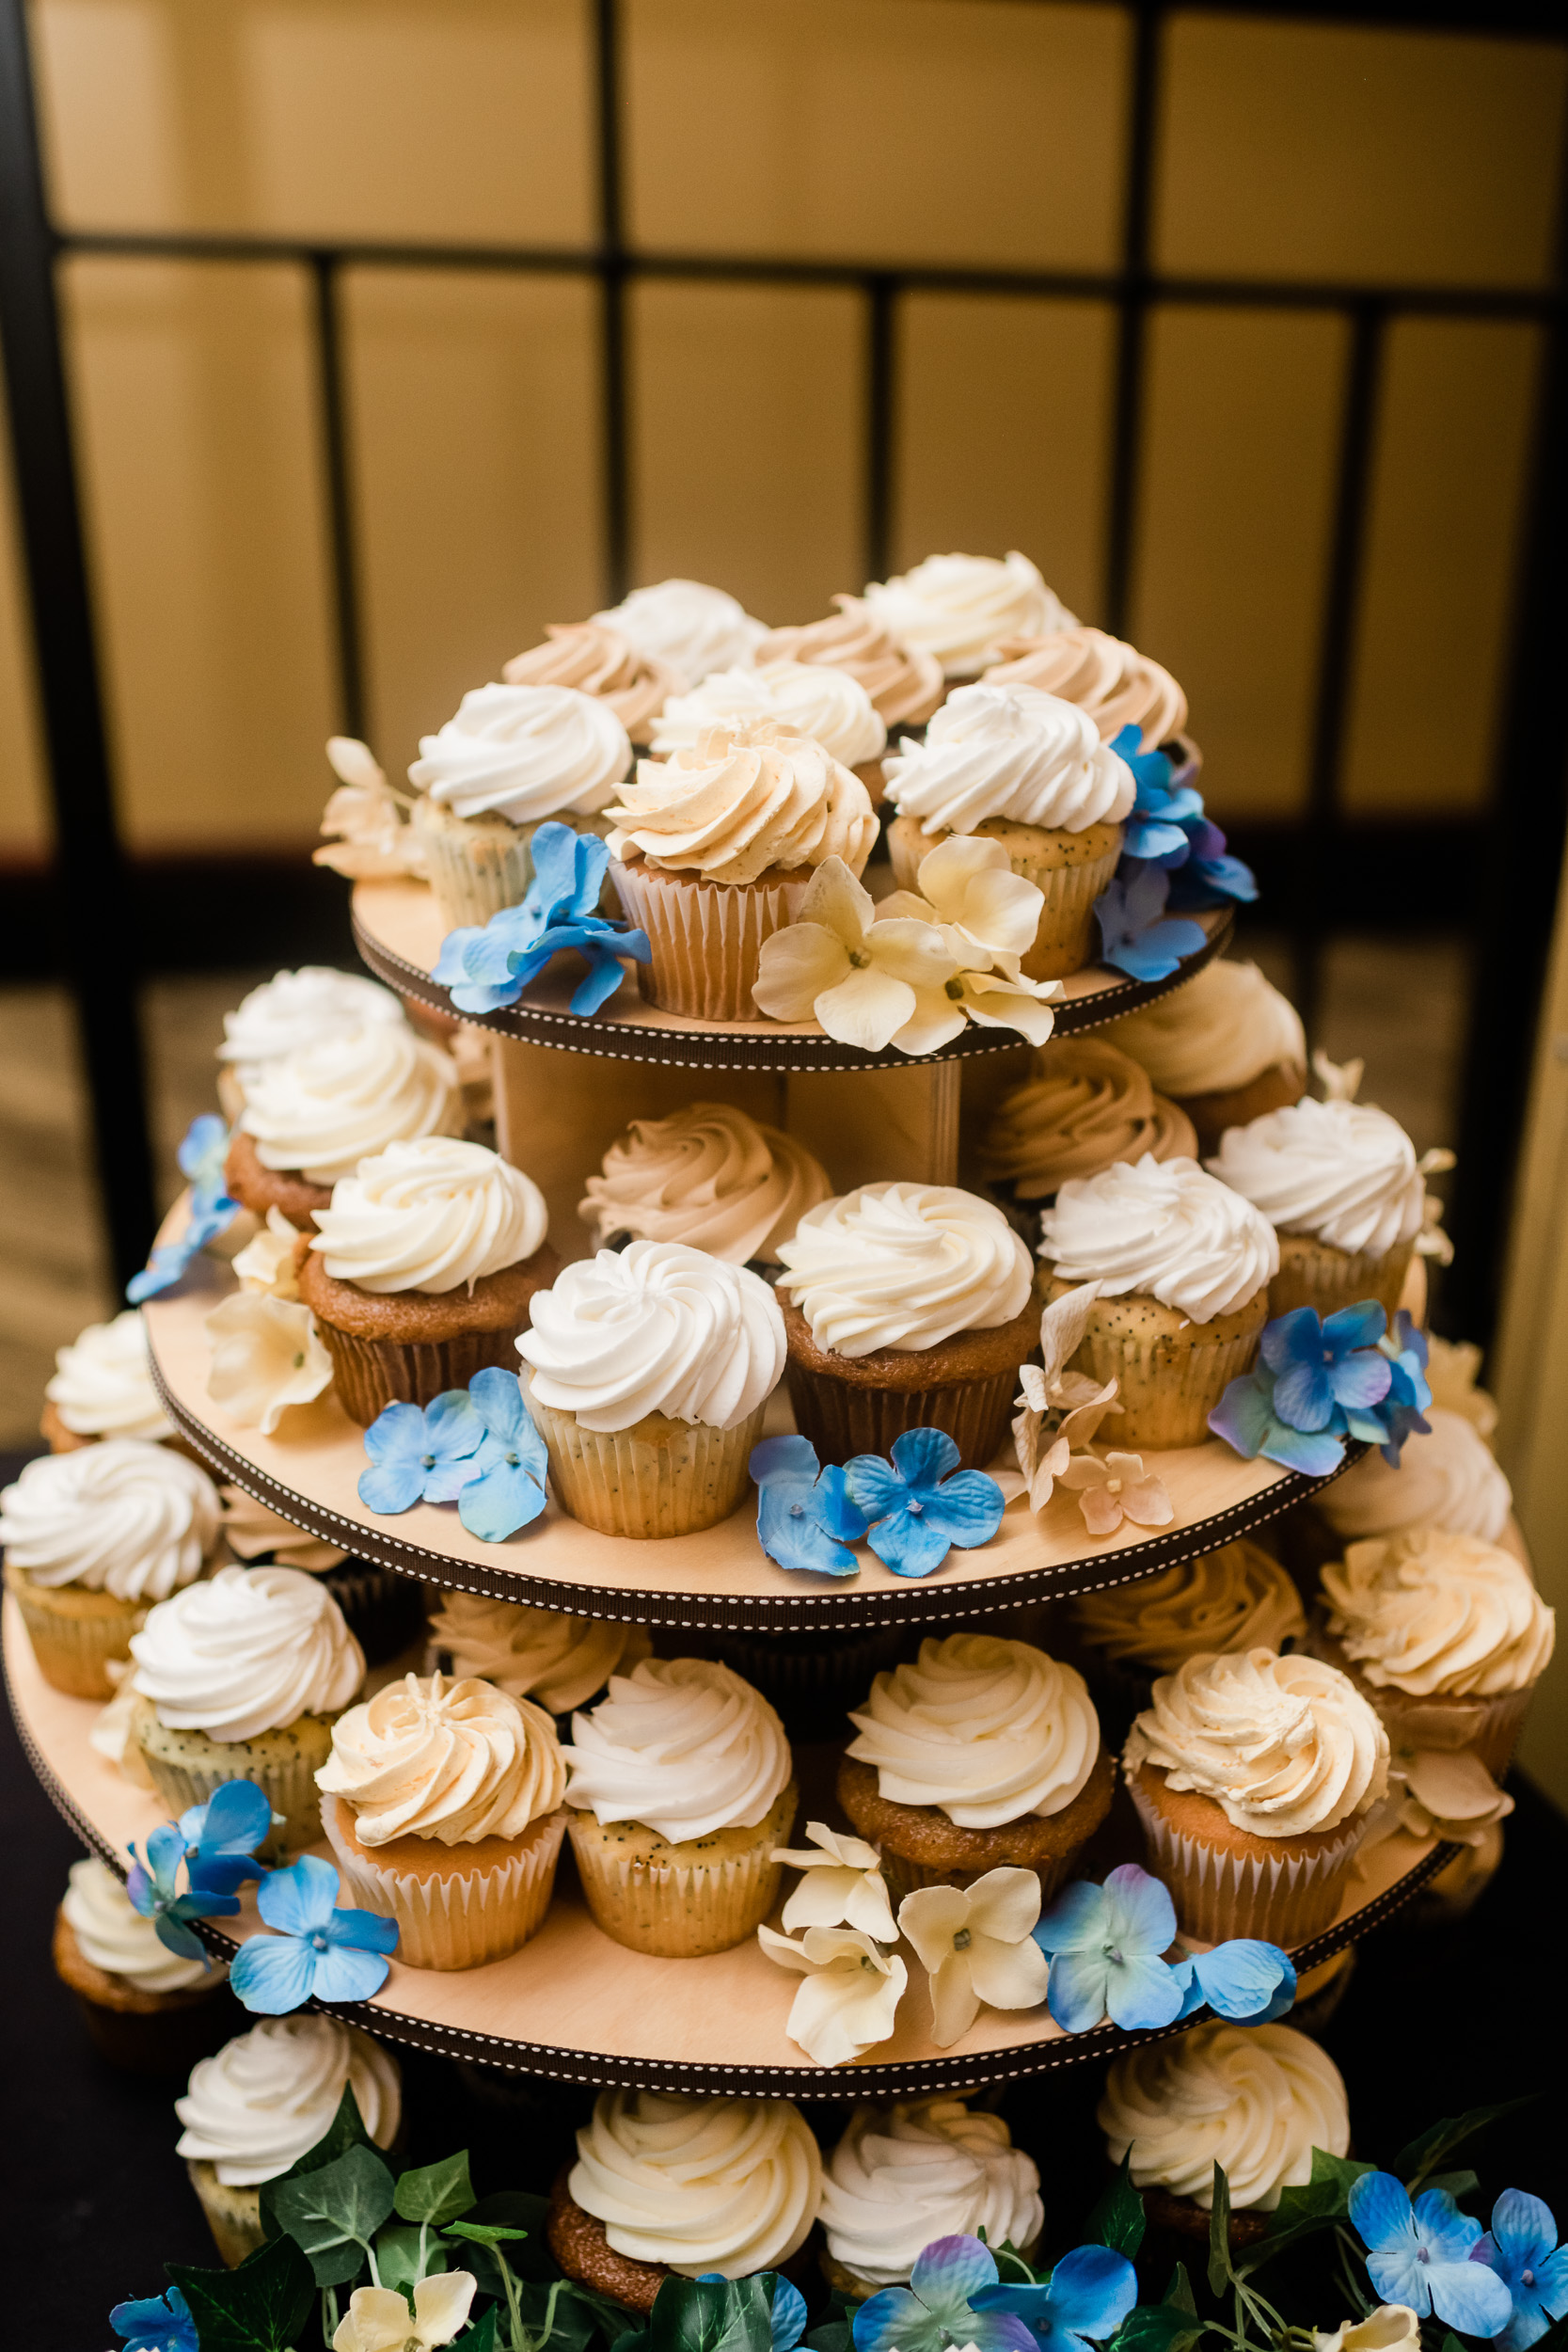 Cupcakes on a four tier display